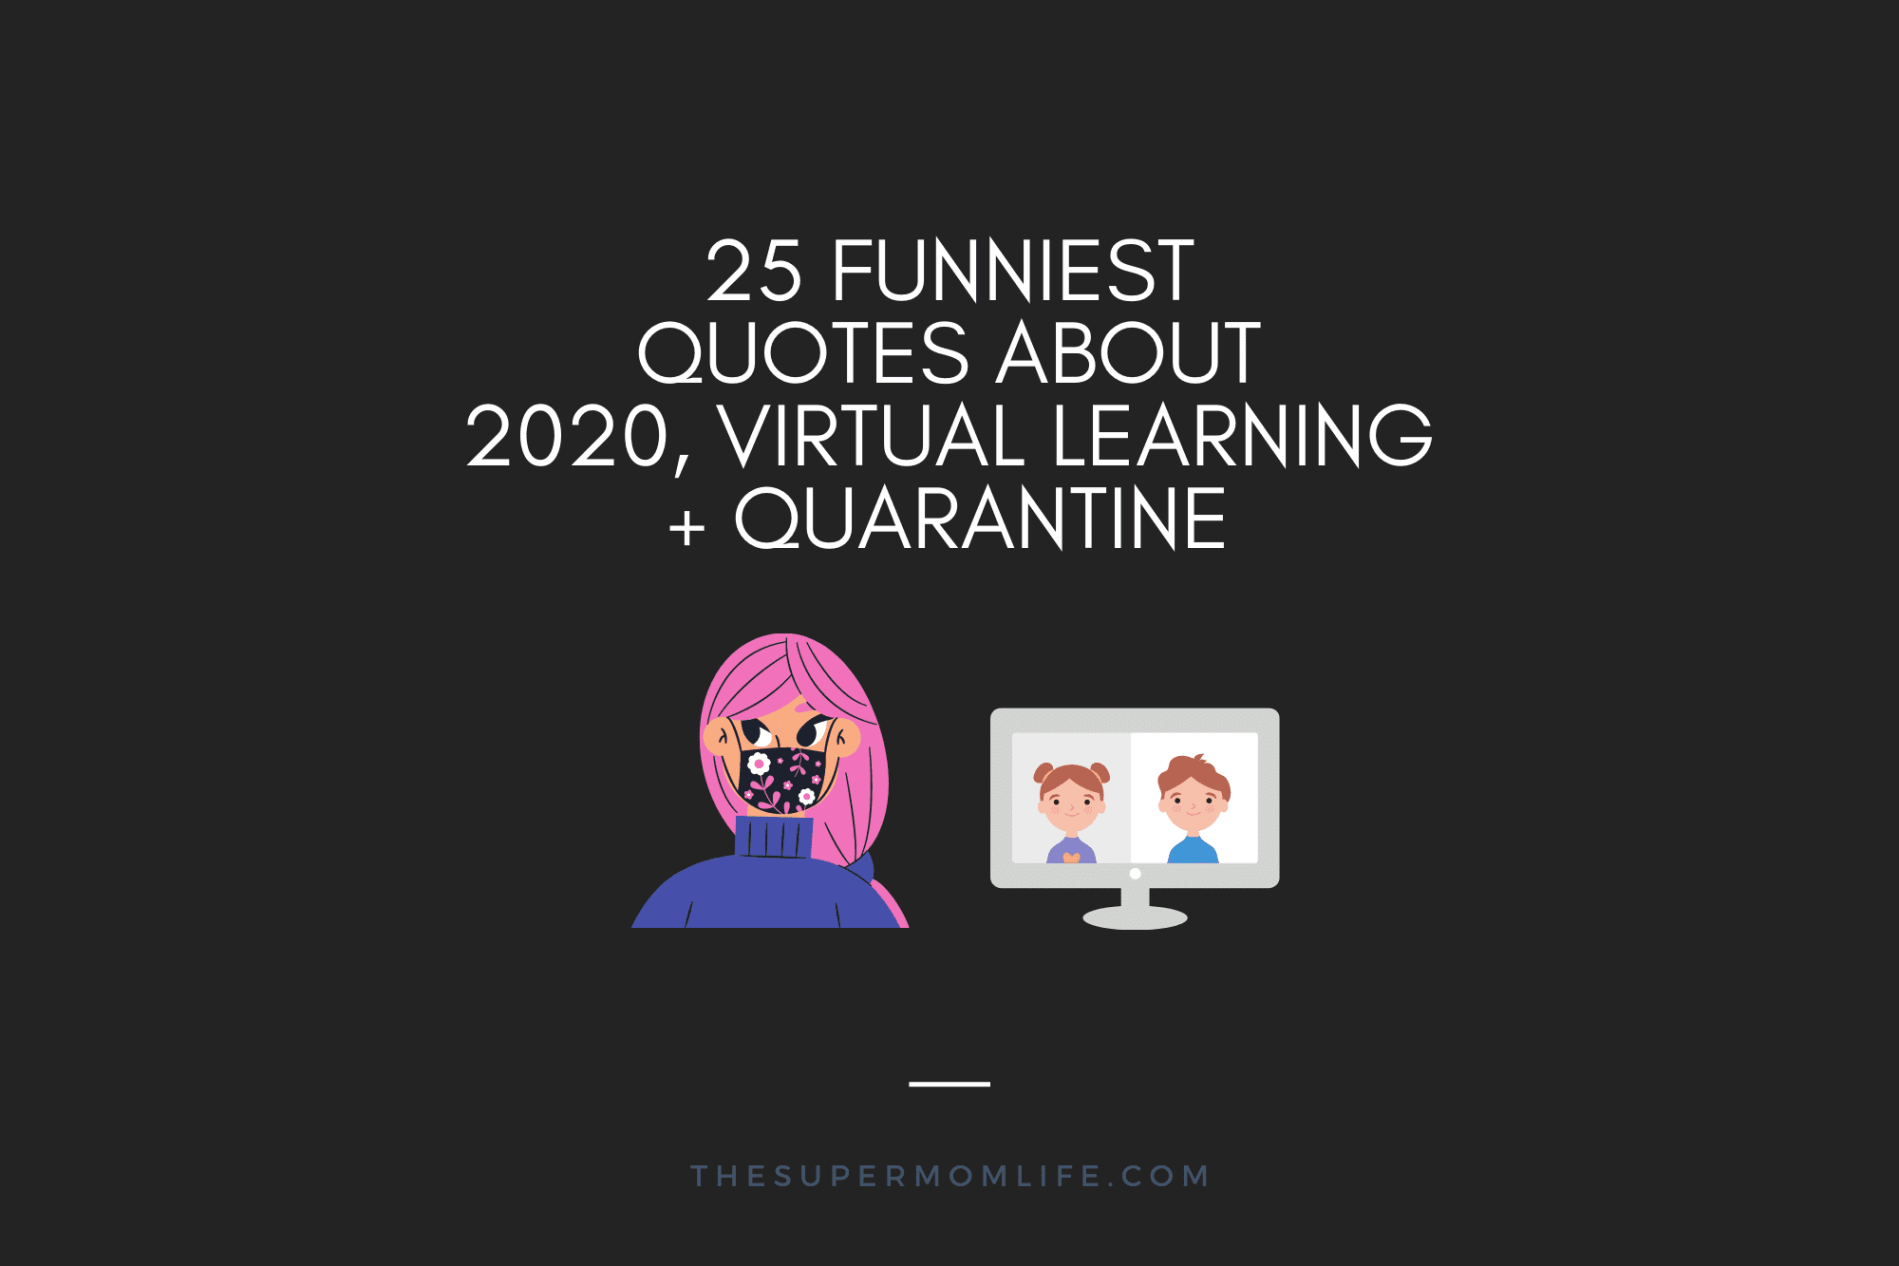 25 funniest quotes bout 2020, virtual learning and quarantine